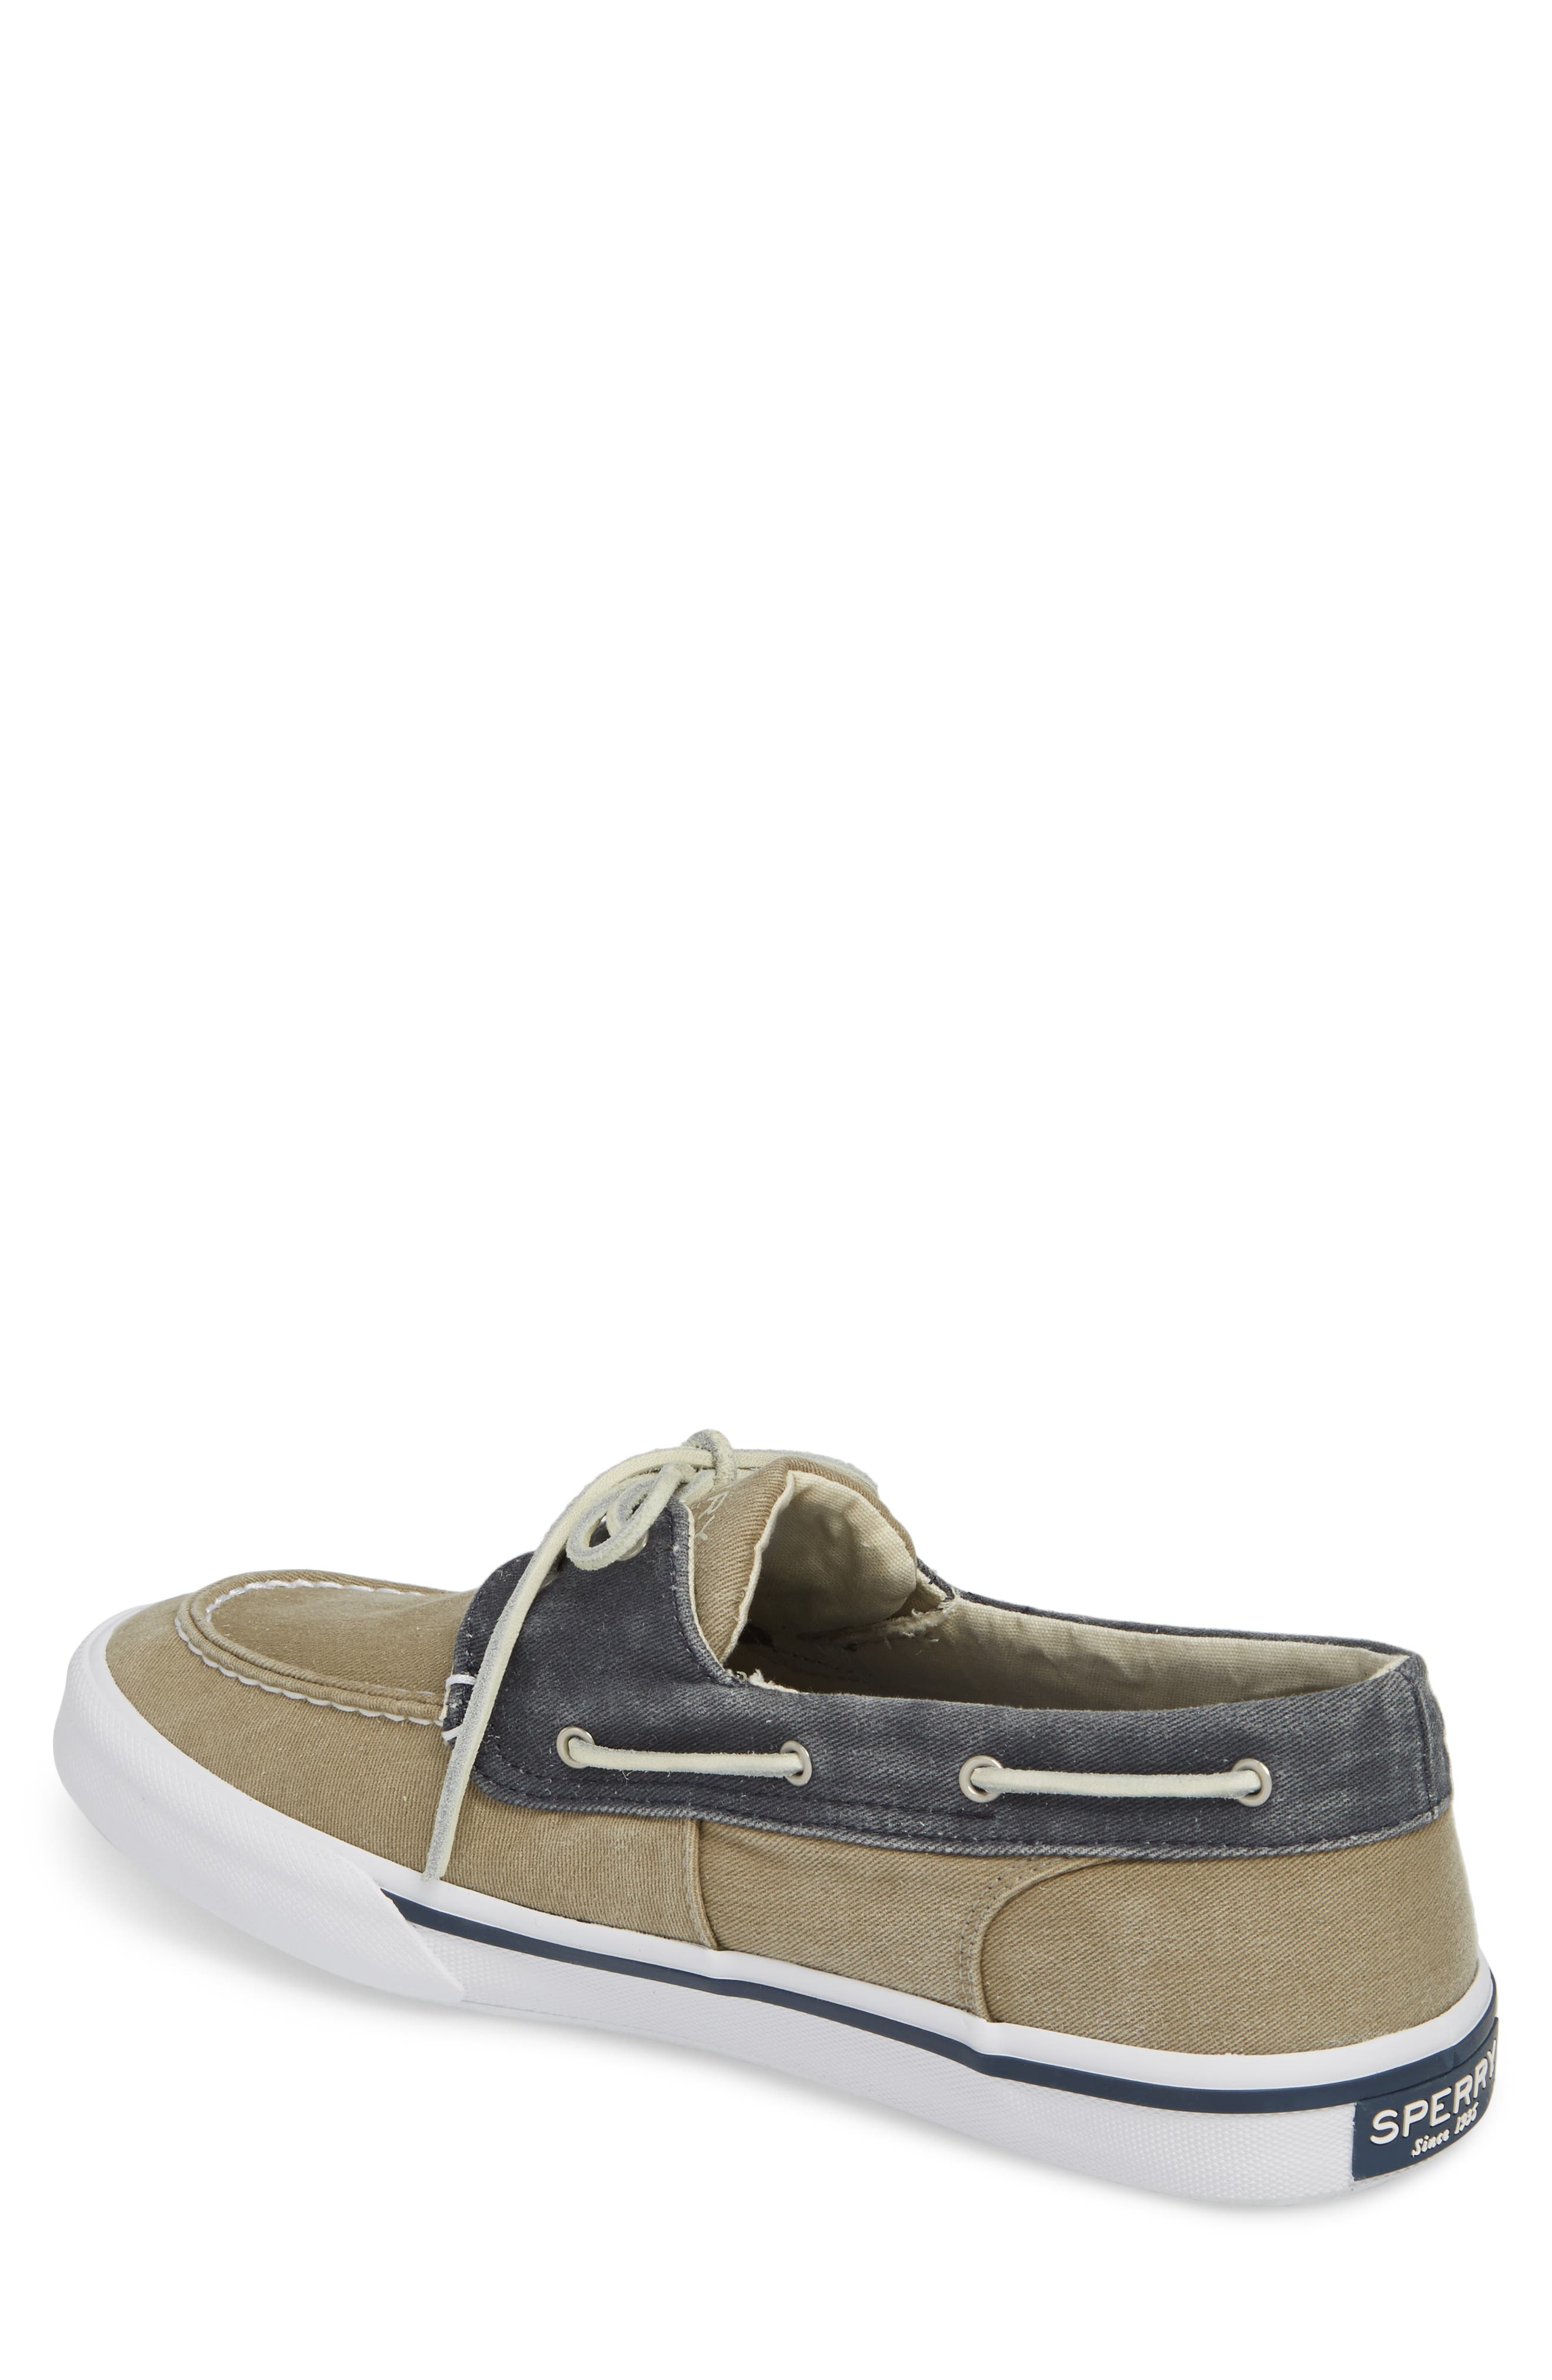 Striper II Boat Shoe,                             Alternate thumbnail 2, color,                             Taupe/ Navy